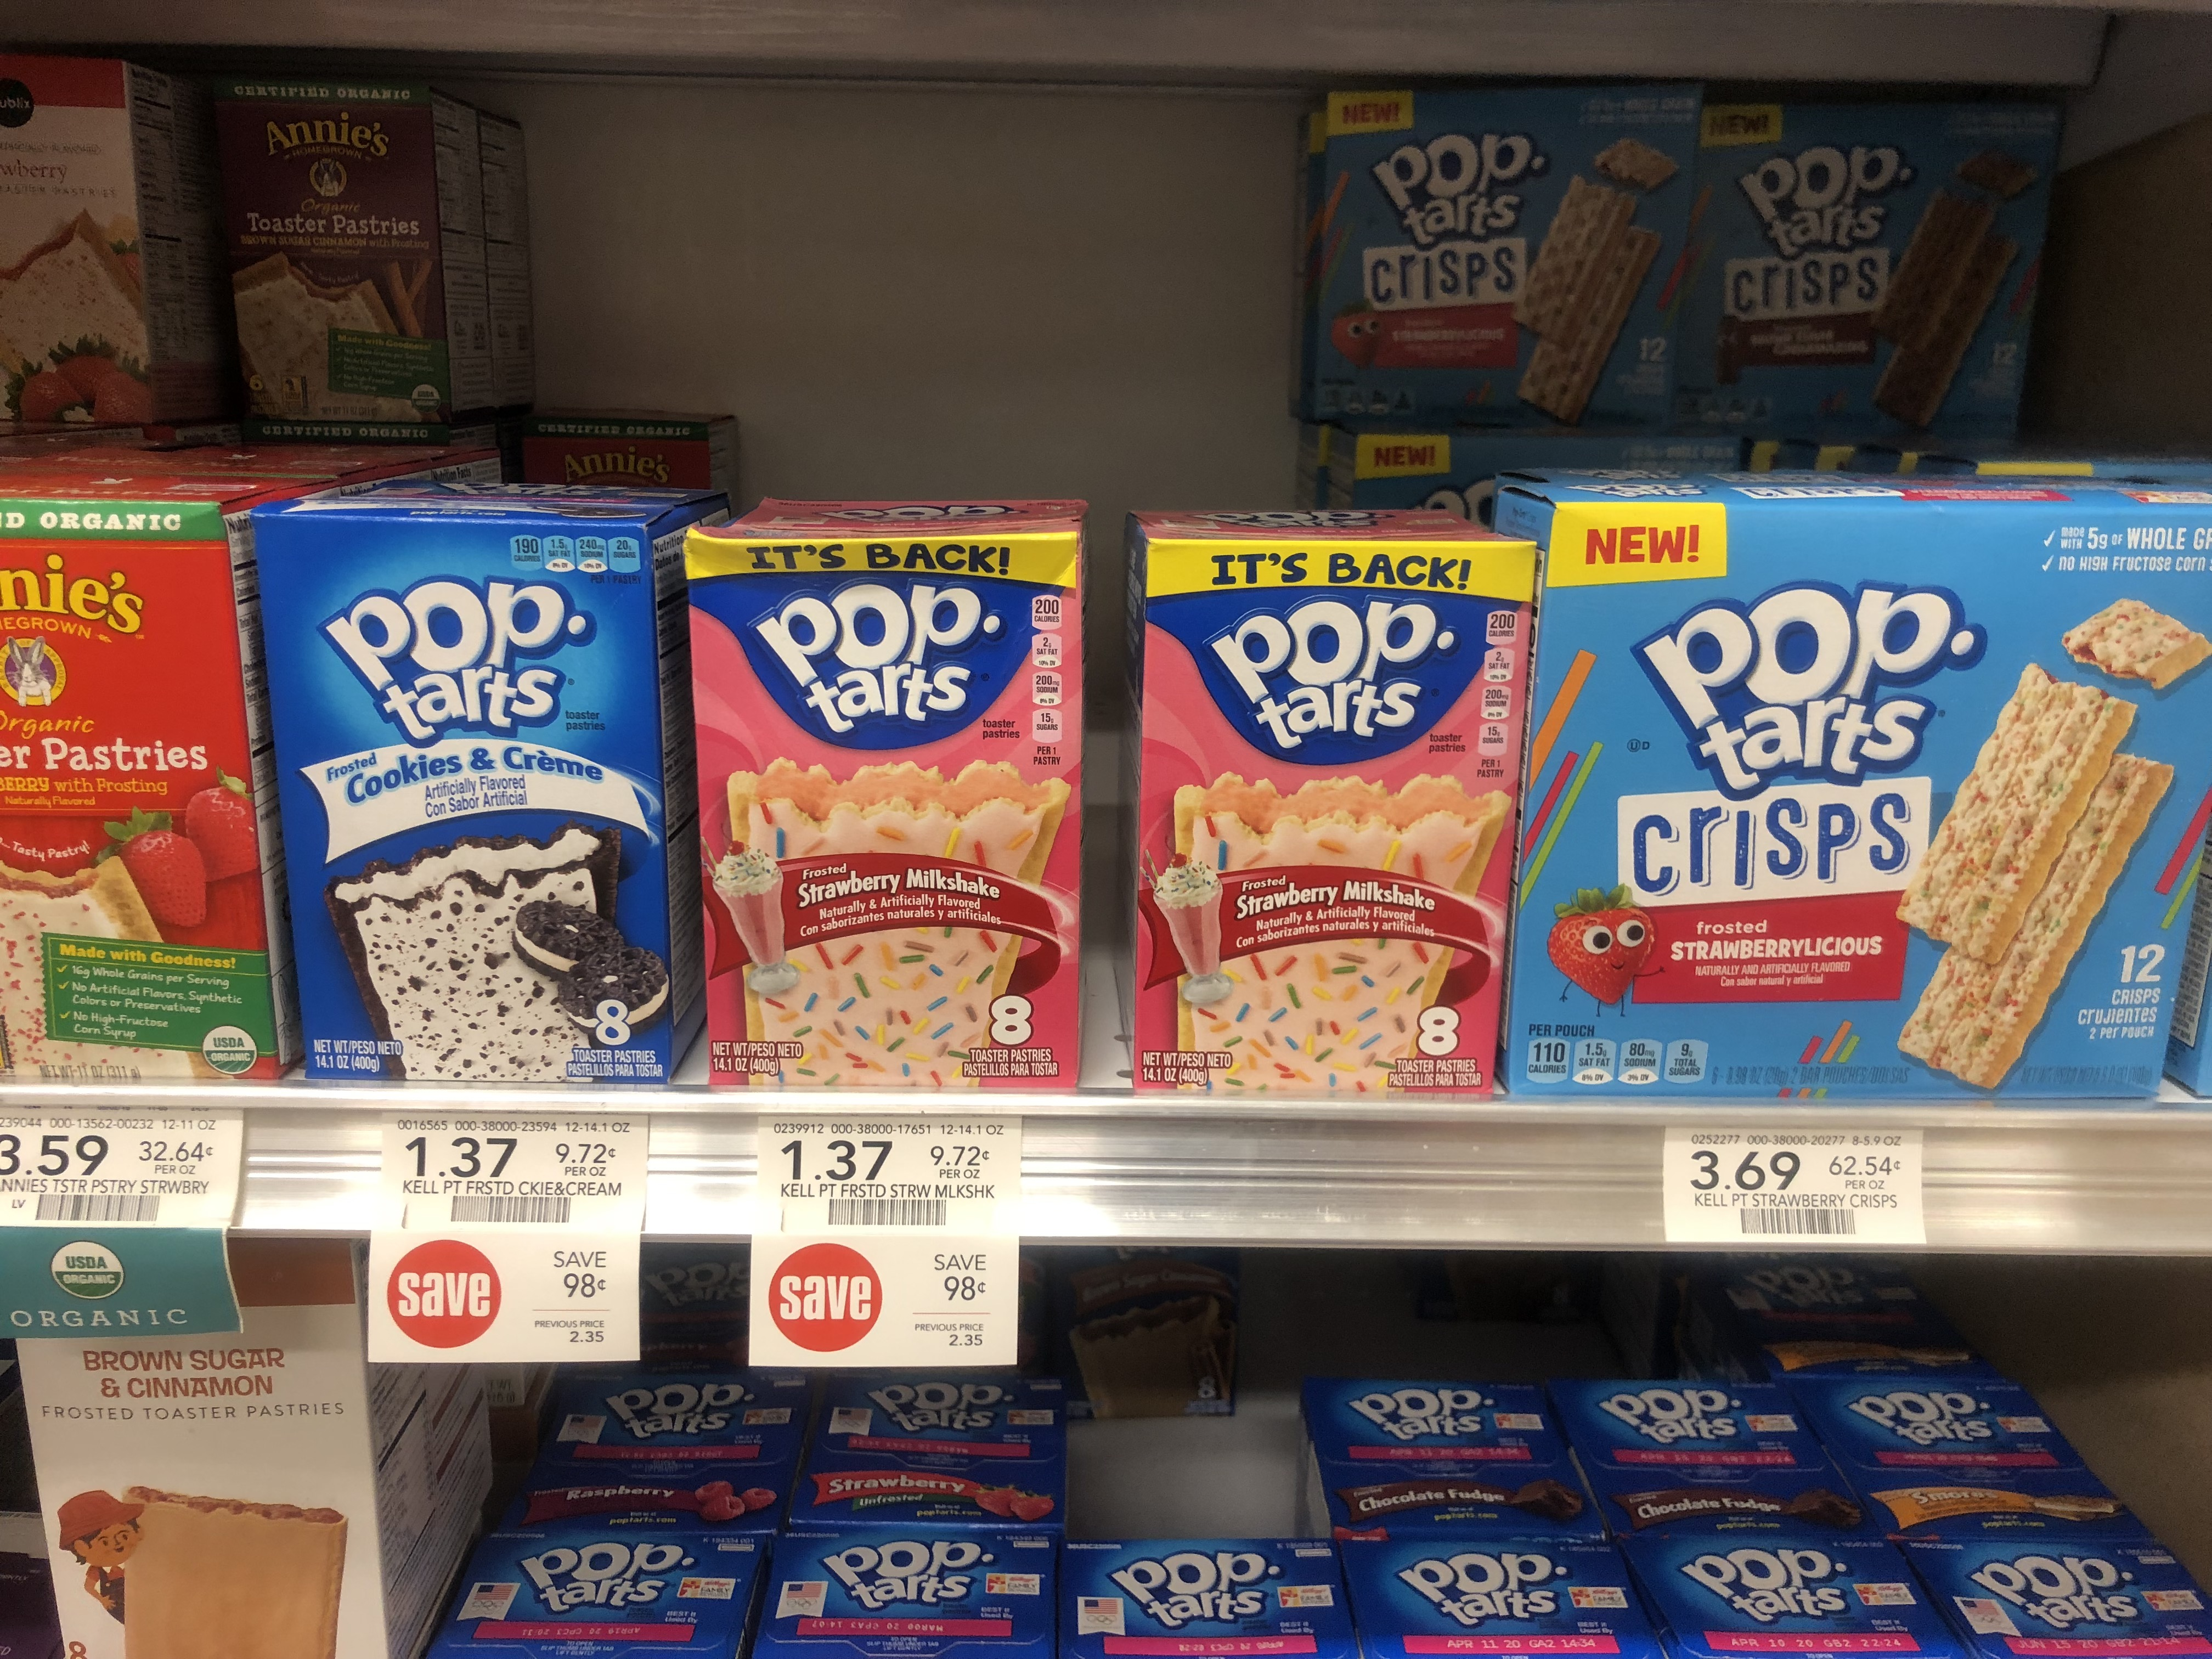 image regarding Pop Tarts Coupon Printable identify Contemporary Pop-Tarts Coupon Will make For A Remarkable Bundle At Publix